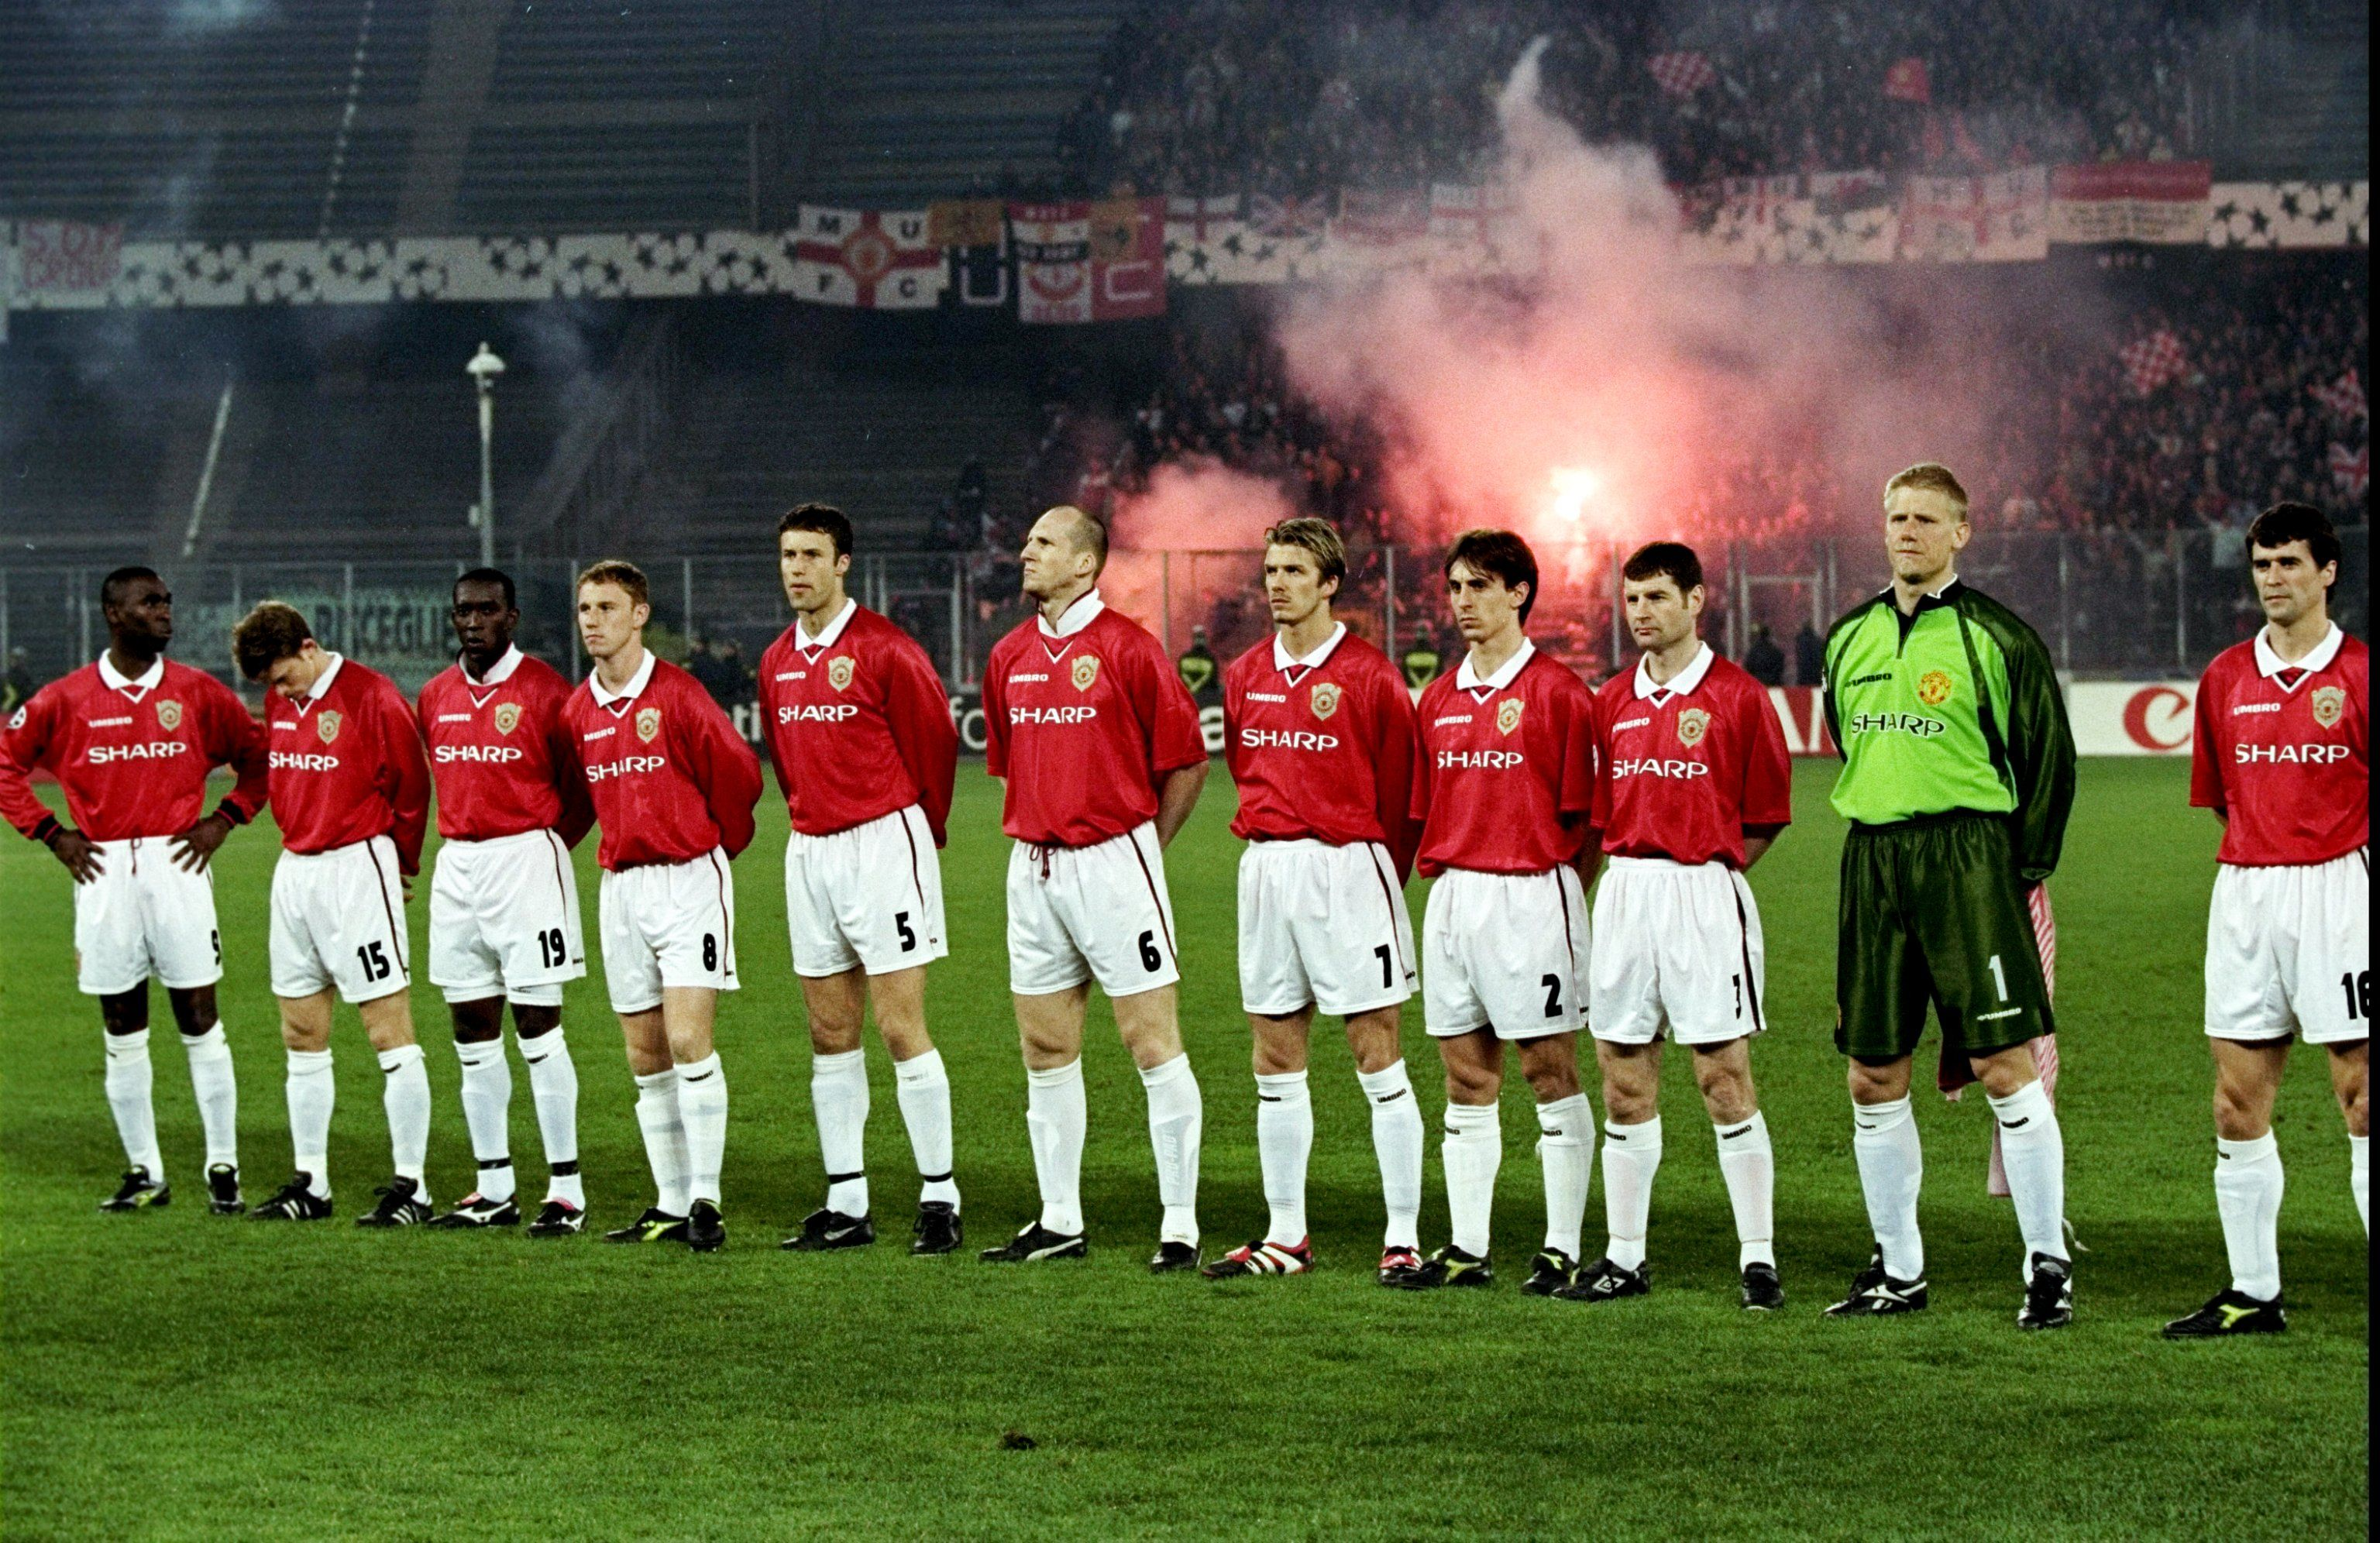 Manutd Prepare To Face Juventus In The 1999 Champions League Semi Final At The Stade Delle Alpi In Manchester United Football Club Manchester United The Unit